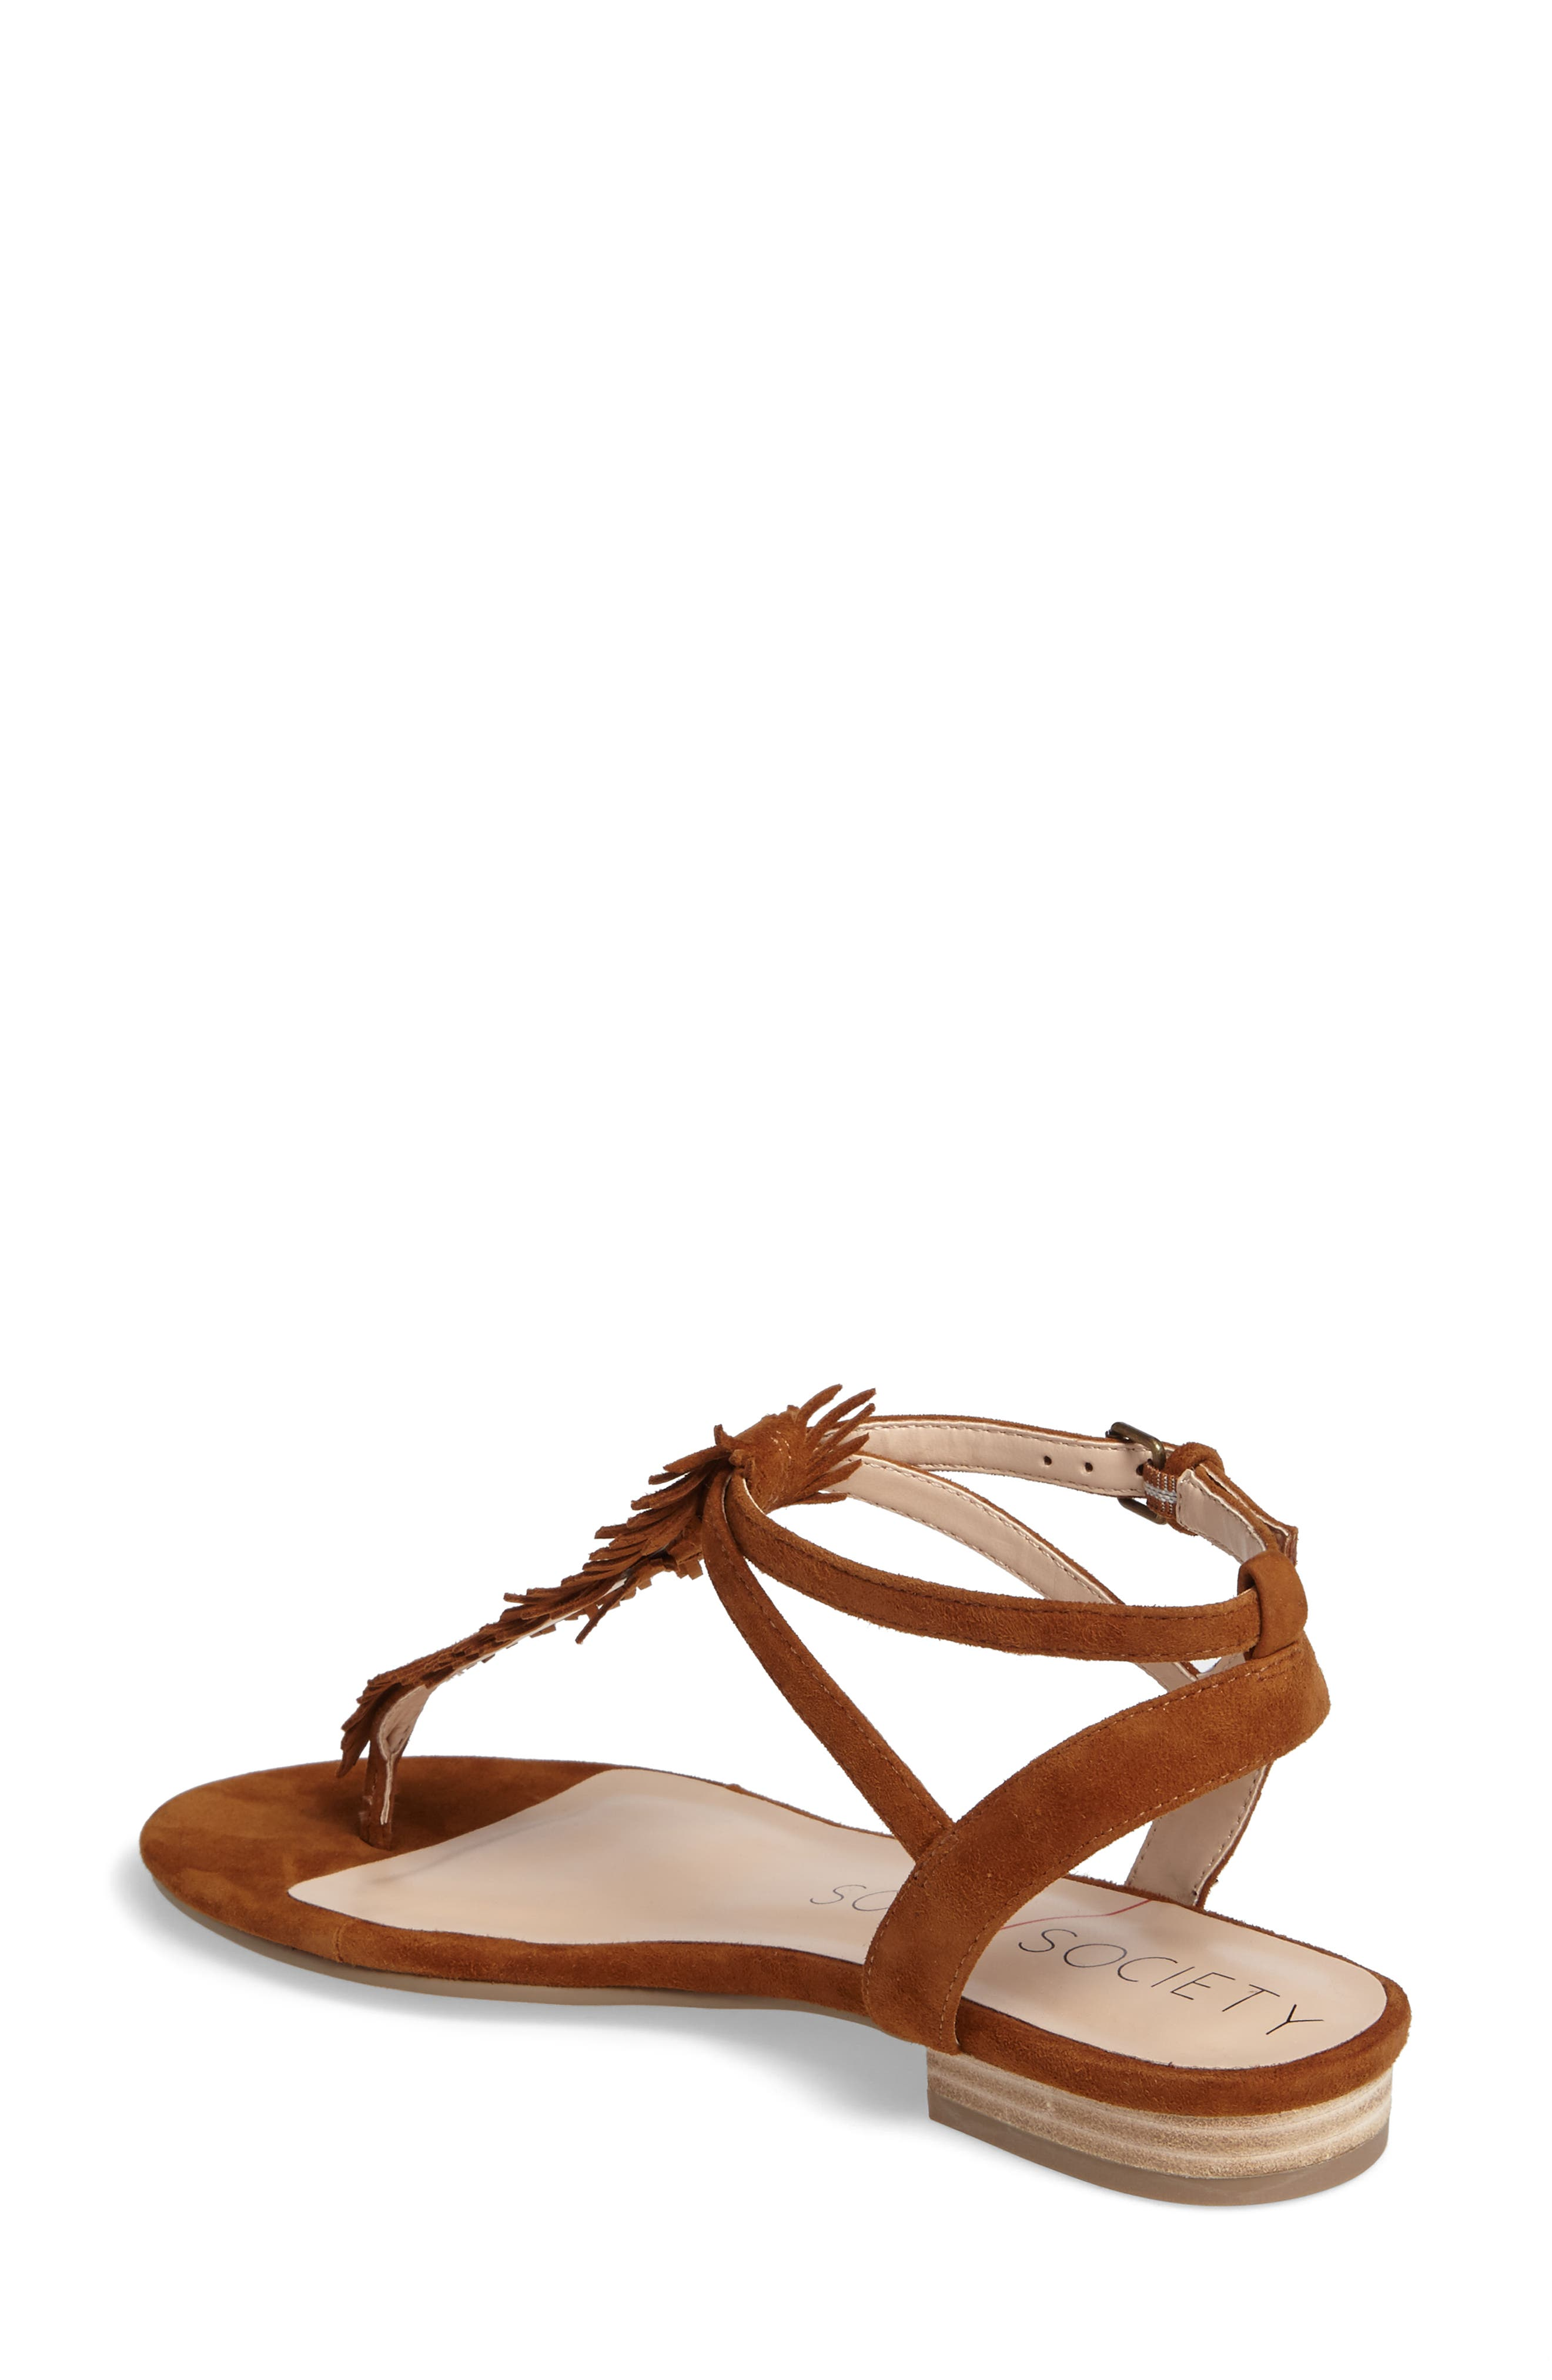 Mara Fringe Thong Sandal,                             Alternate thumbnail 2, color,                             210